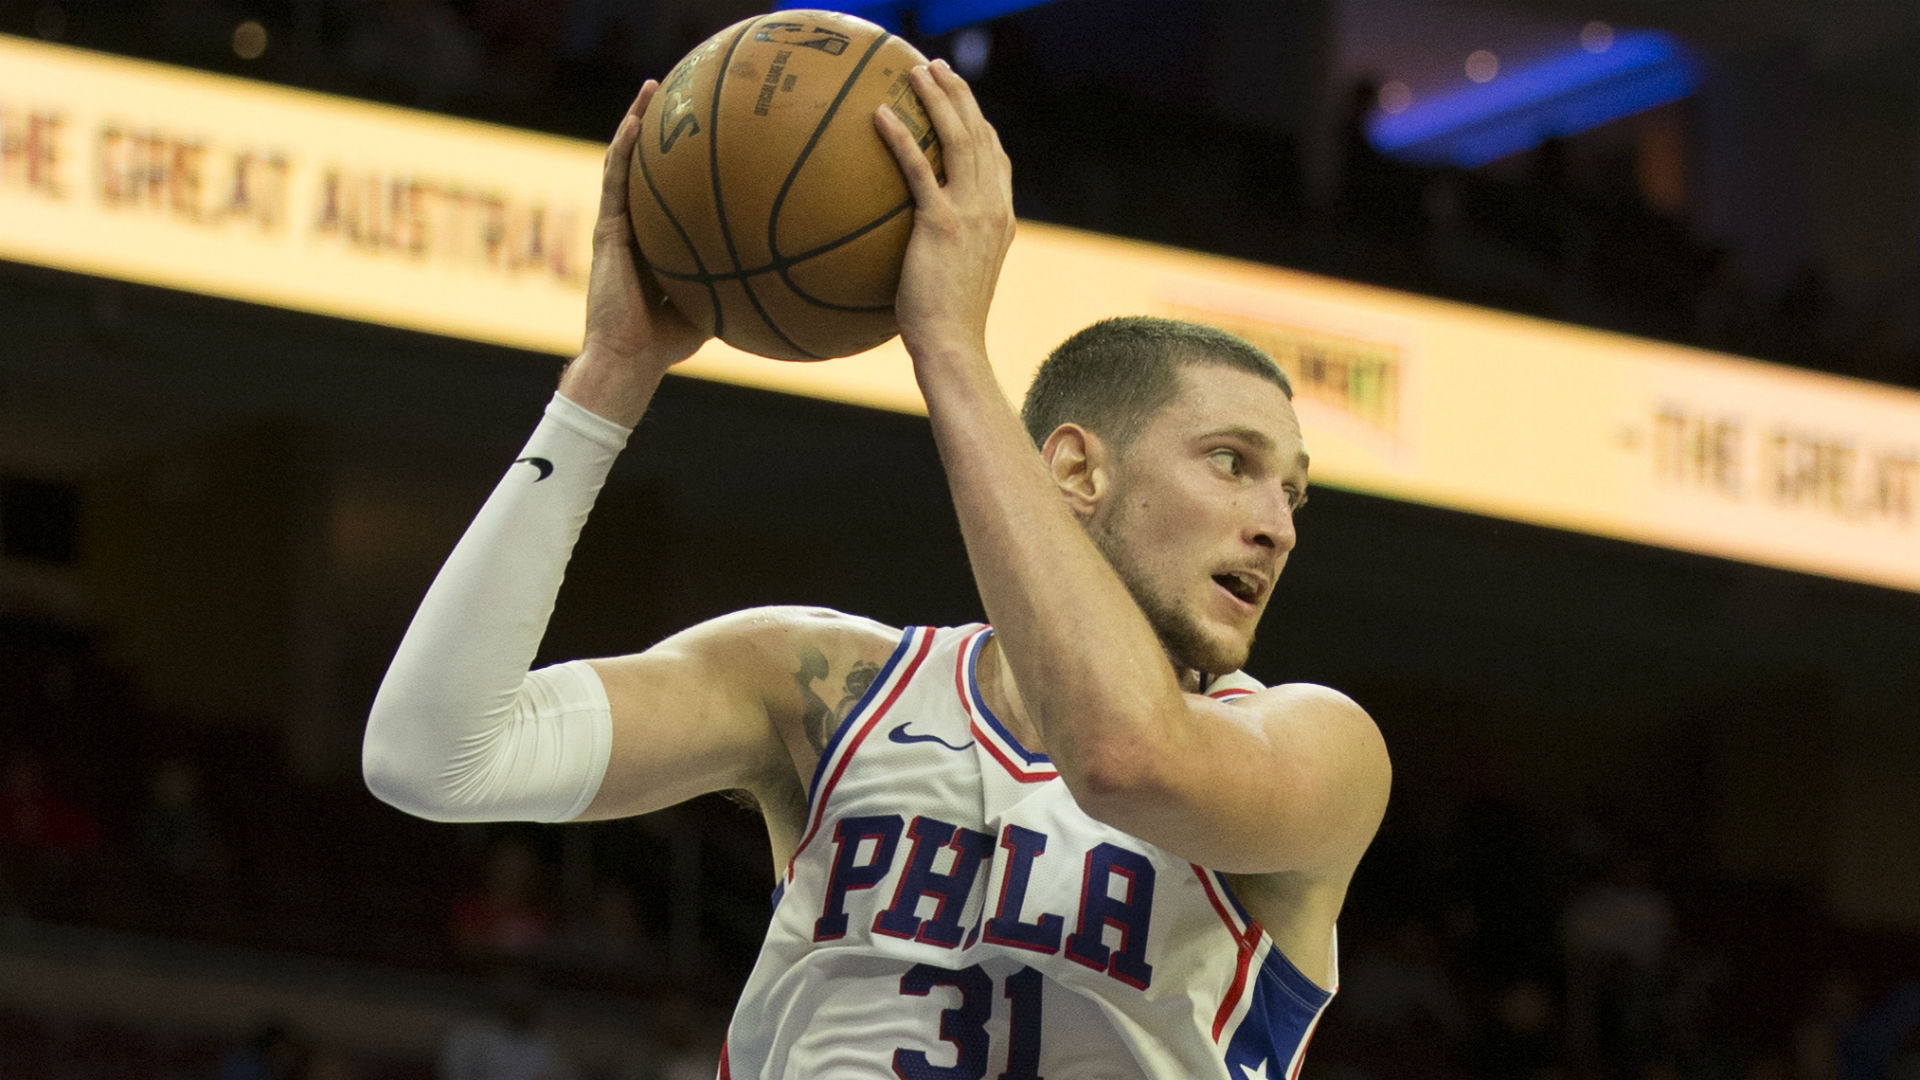 NBA trade deadline: Lakers acquire Mike Muscala from Clippers for Michael Beasley, Ivica Zubac